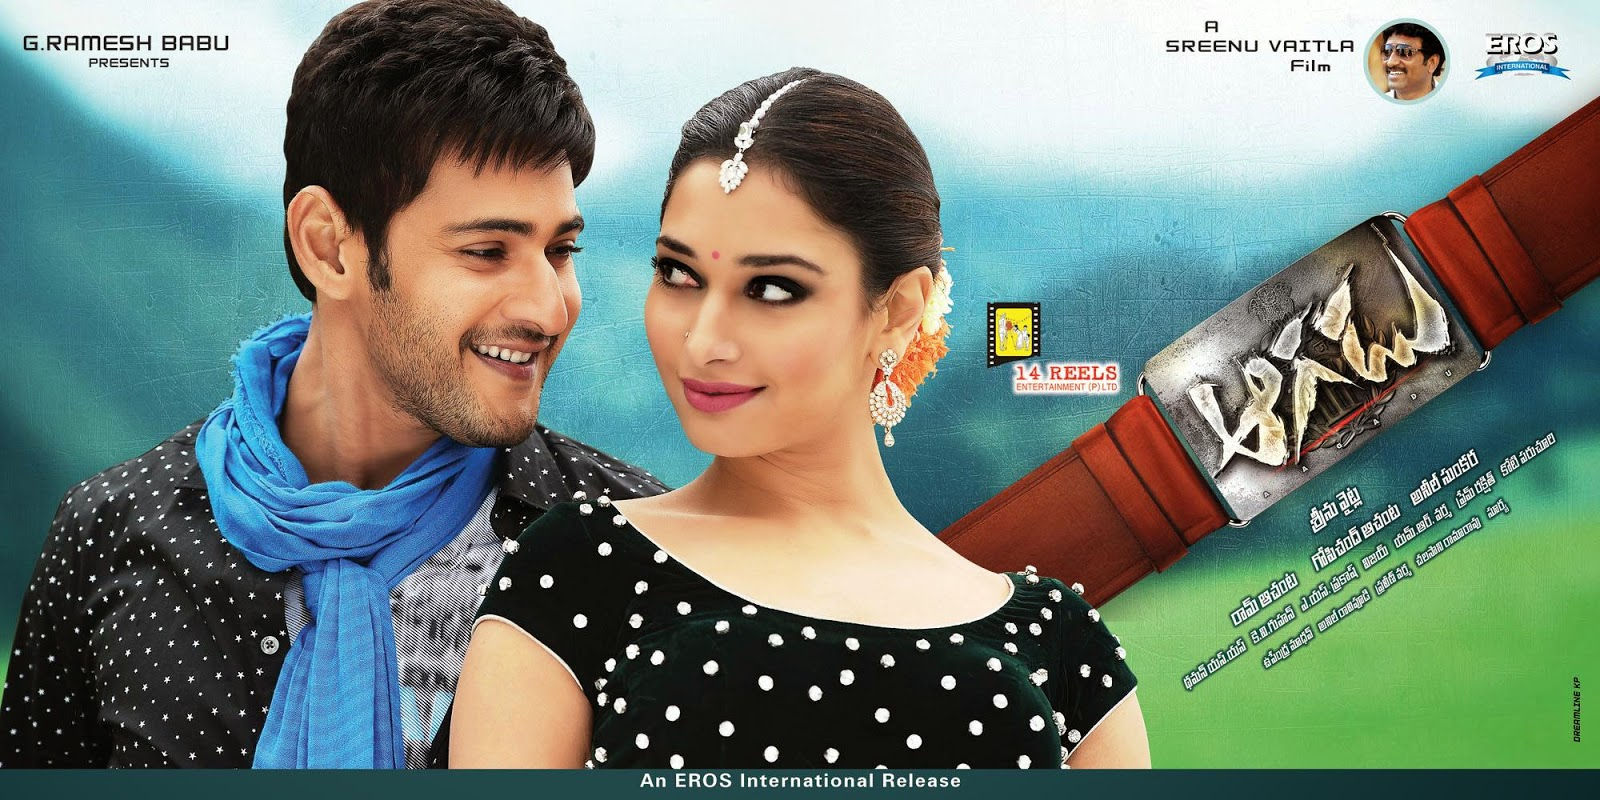 Aagadu telugu movie review | mahesh babu aagadu review | aagadu movie review | aagadu telugu review | mahesh babu aagadu cinema review | mahesh babu tamannah aagadu | aagadu cinema review | aagadu review and rating | mahesh babu aagadu movierating | aagadu first day first show live updates | mahesh babu aagadu live updates | Aagadu Review | LIVE UPDATES | Aagadu Rating | Aagadu Movie Review | Aagadu IMDB Rating | Aagadu Movie Rating | Aagadu Telugu Movie Review | Mahesh Babu Aagadu Review | Mahesh Babu | Aagadu Movie Review | Aagadu movie online | watch Aagadu movie online | Aagadu 1st Day Collections | Aagadu Movie Tickets | Aagadu Theaters List | Aagadu Tickets Online Booking | Aagadu Idlebrain Review | Aagadu Idlebrain Rating | Aagadu All Websites rating | Aagadu 123 telguu rating | Aagadu greatandhra rating